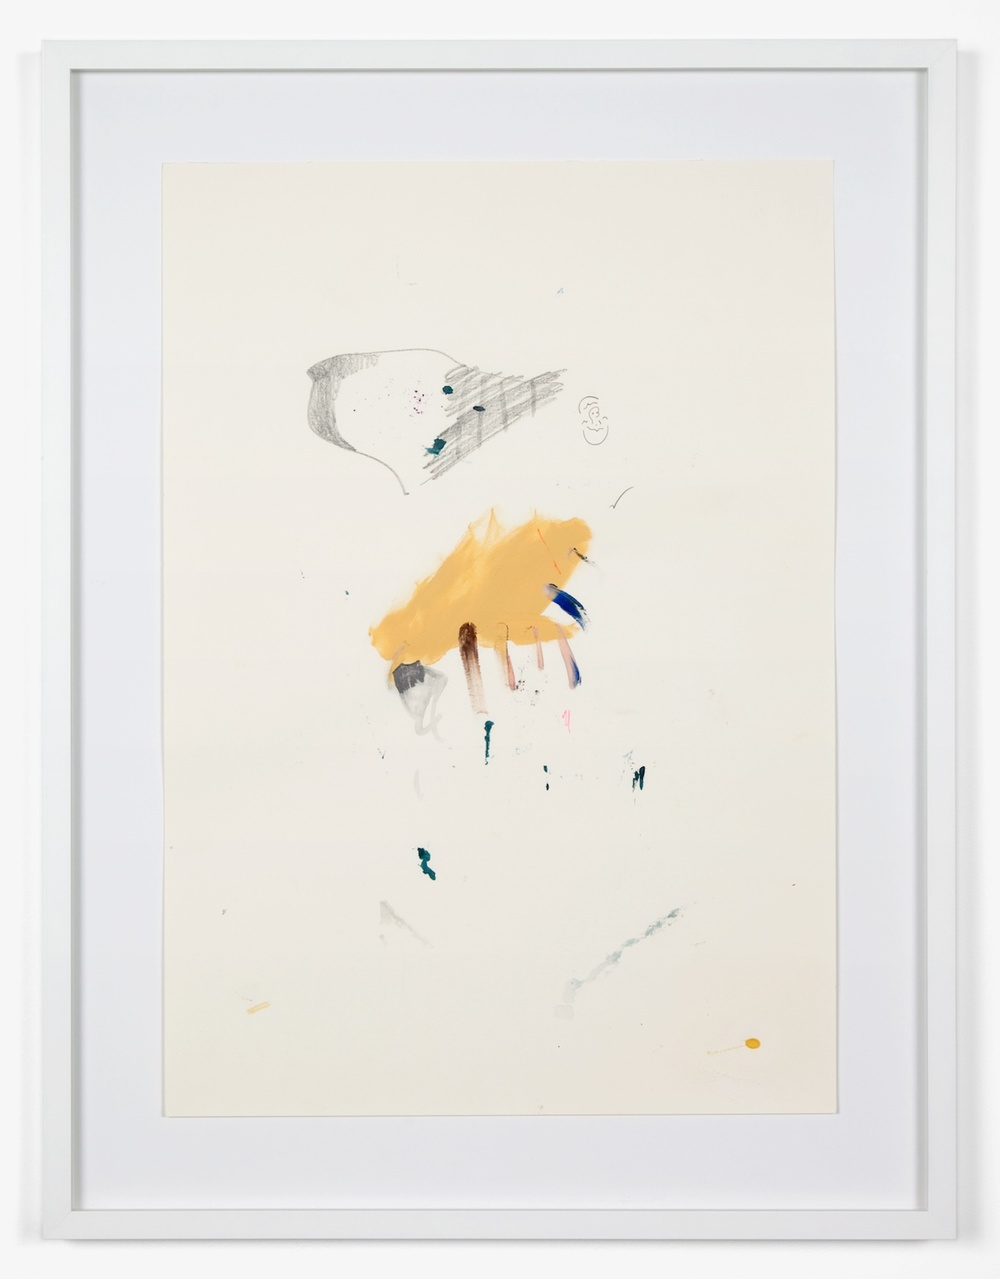 Verena Dengler  Dinosaur  2011 Mixed media paint on stressed paper 29 ⅜h x 22 ¼w in VD001